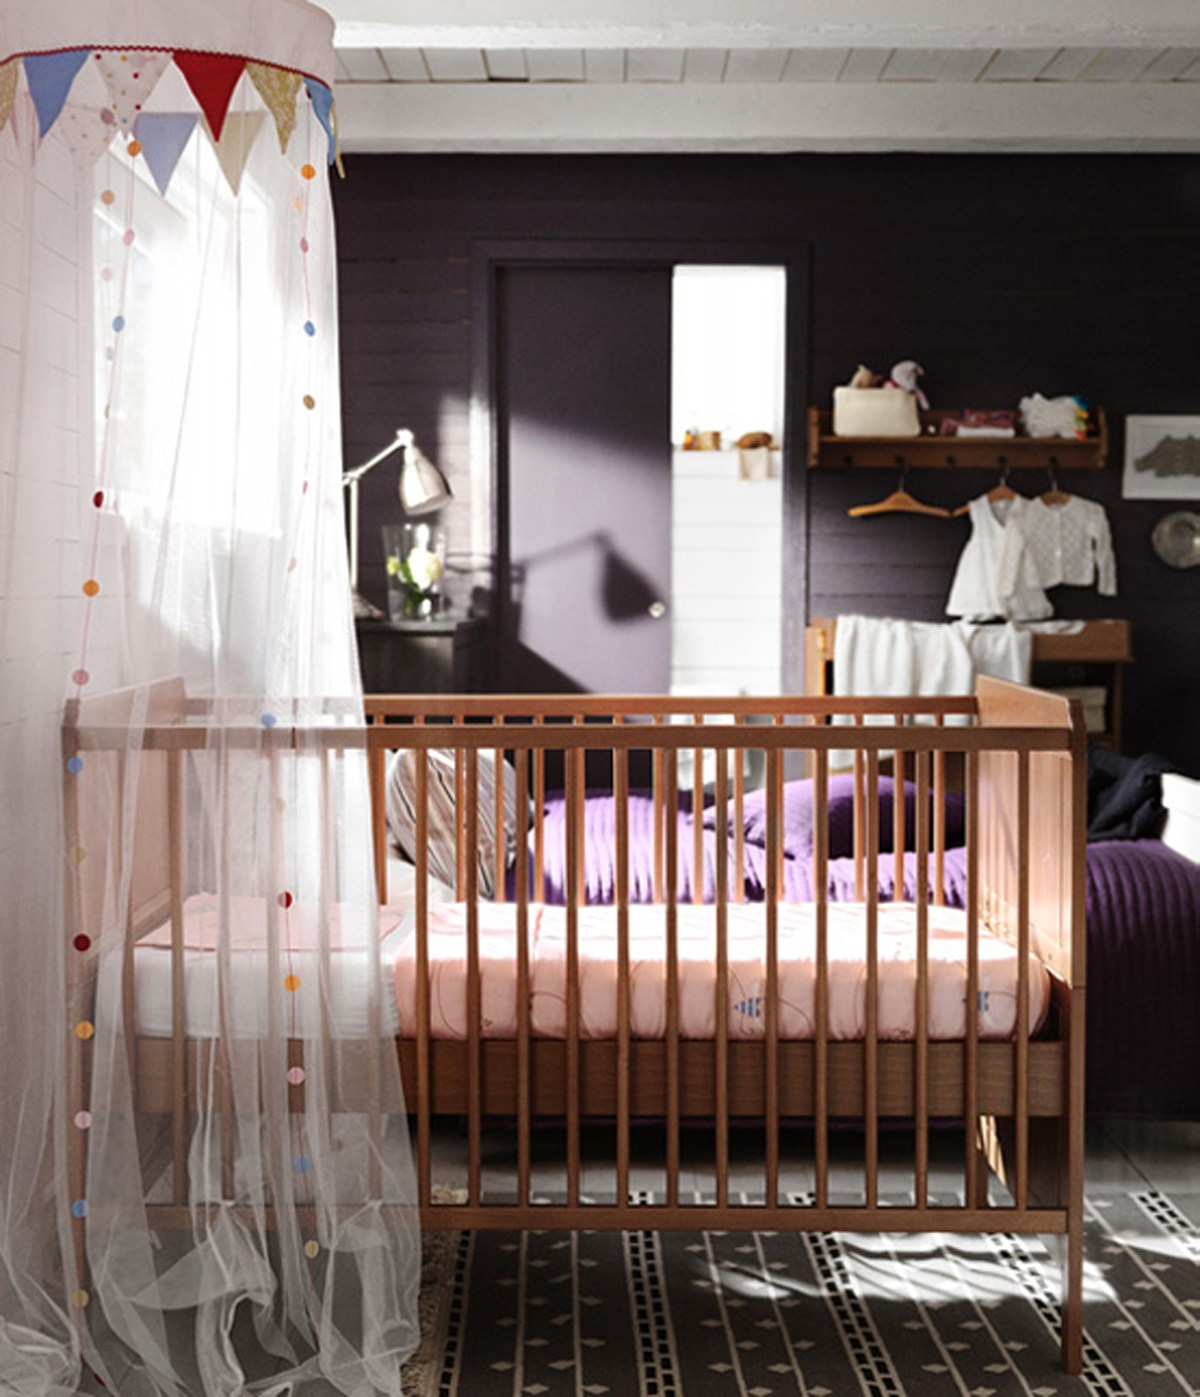 baby-bedroom-furniture-sets-ikea-photo-11